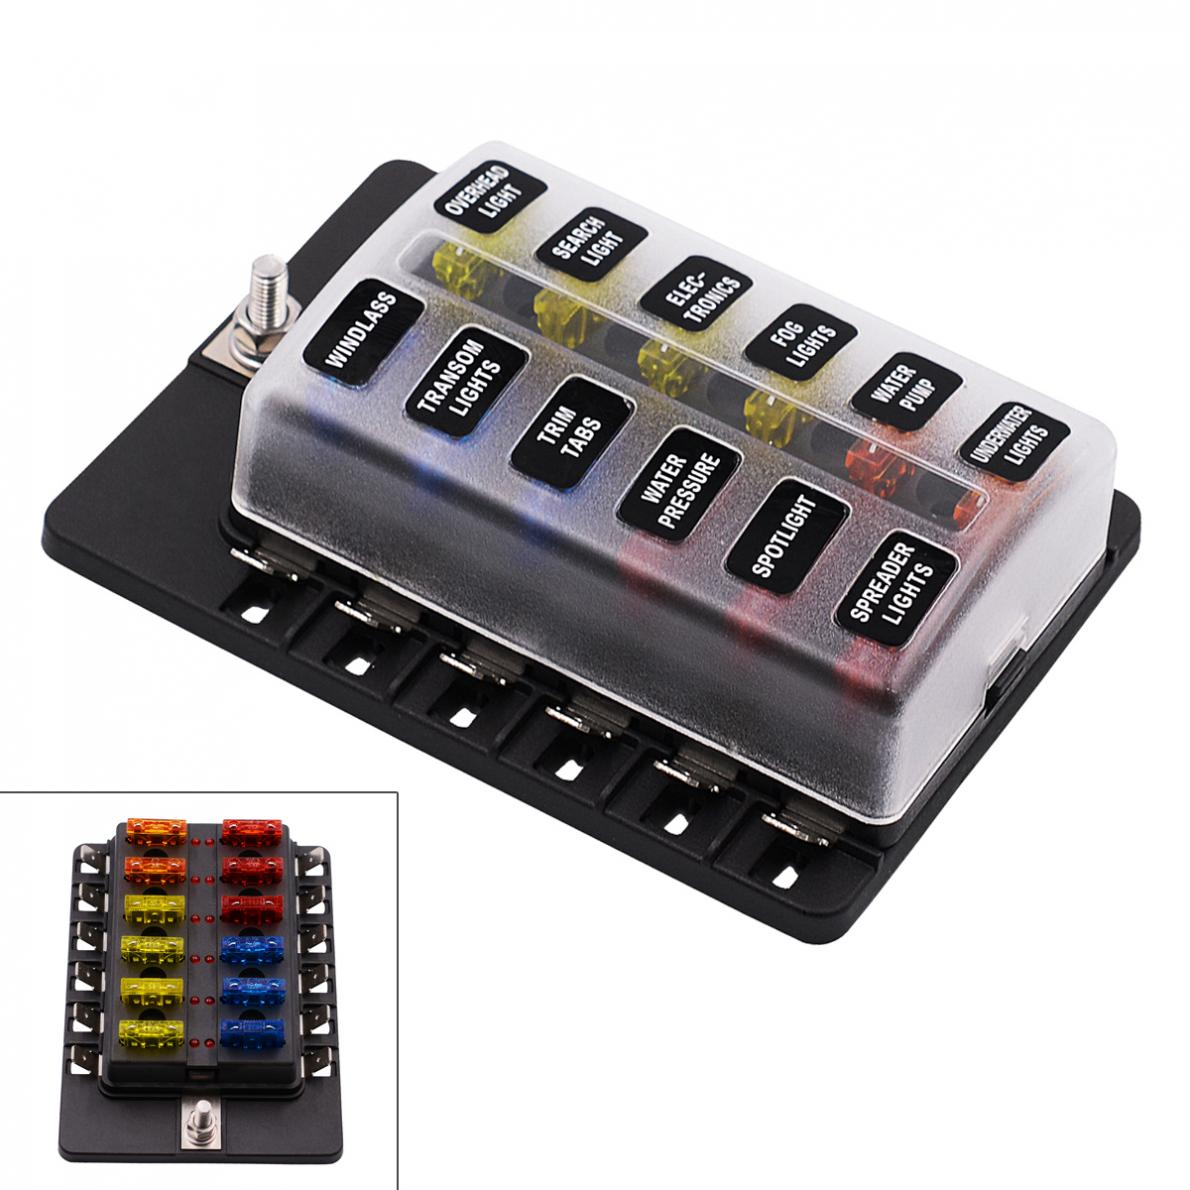 12 Way 12v 24v Blade Fuse Box Holder With Led Warning Light Kit For Porsche Cayenne 2011 Shop Best Array 6 Car Boat Marine Trike From Tomtopcom Various Discounts Are Waiting